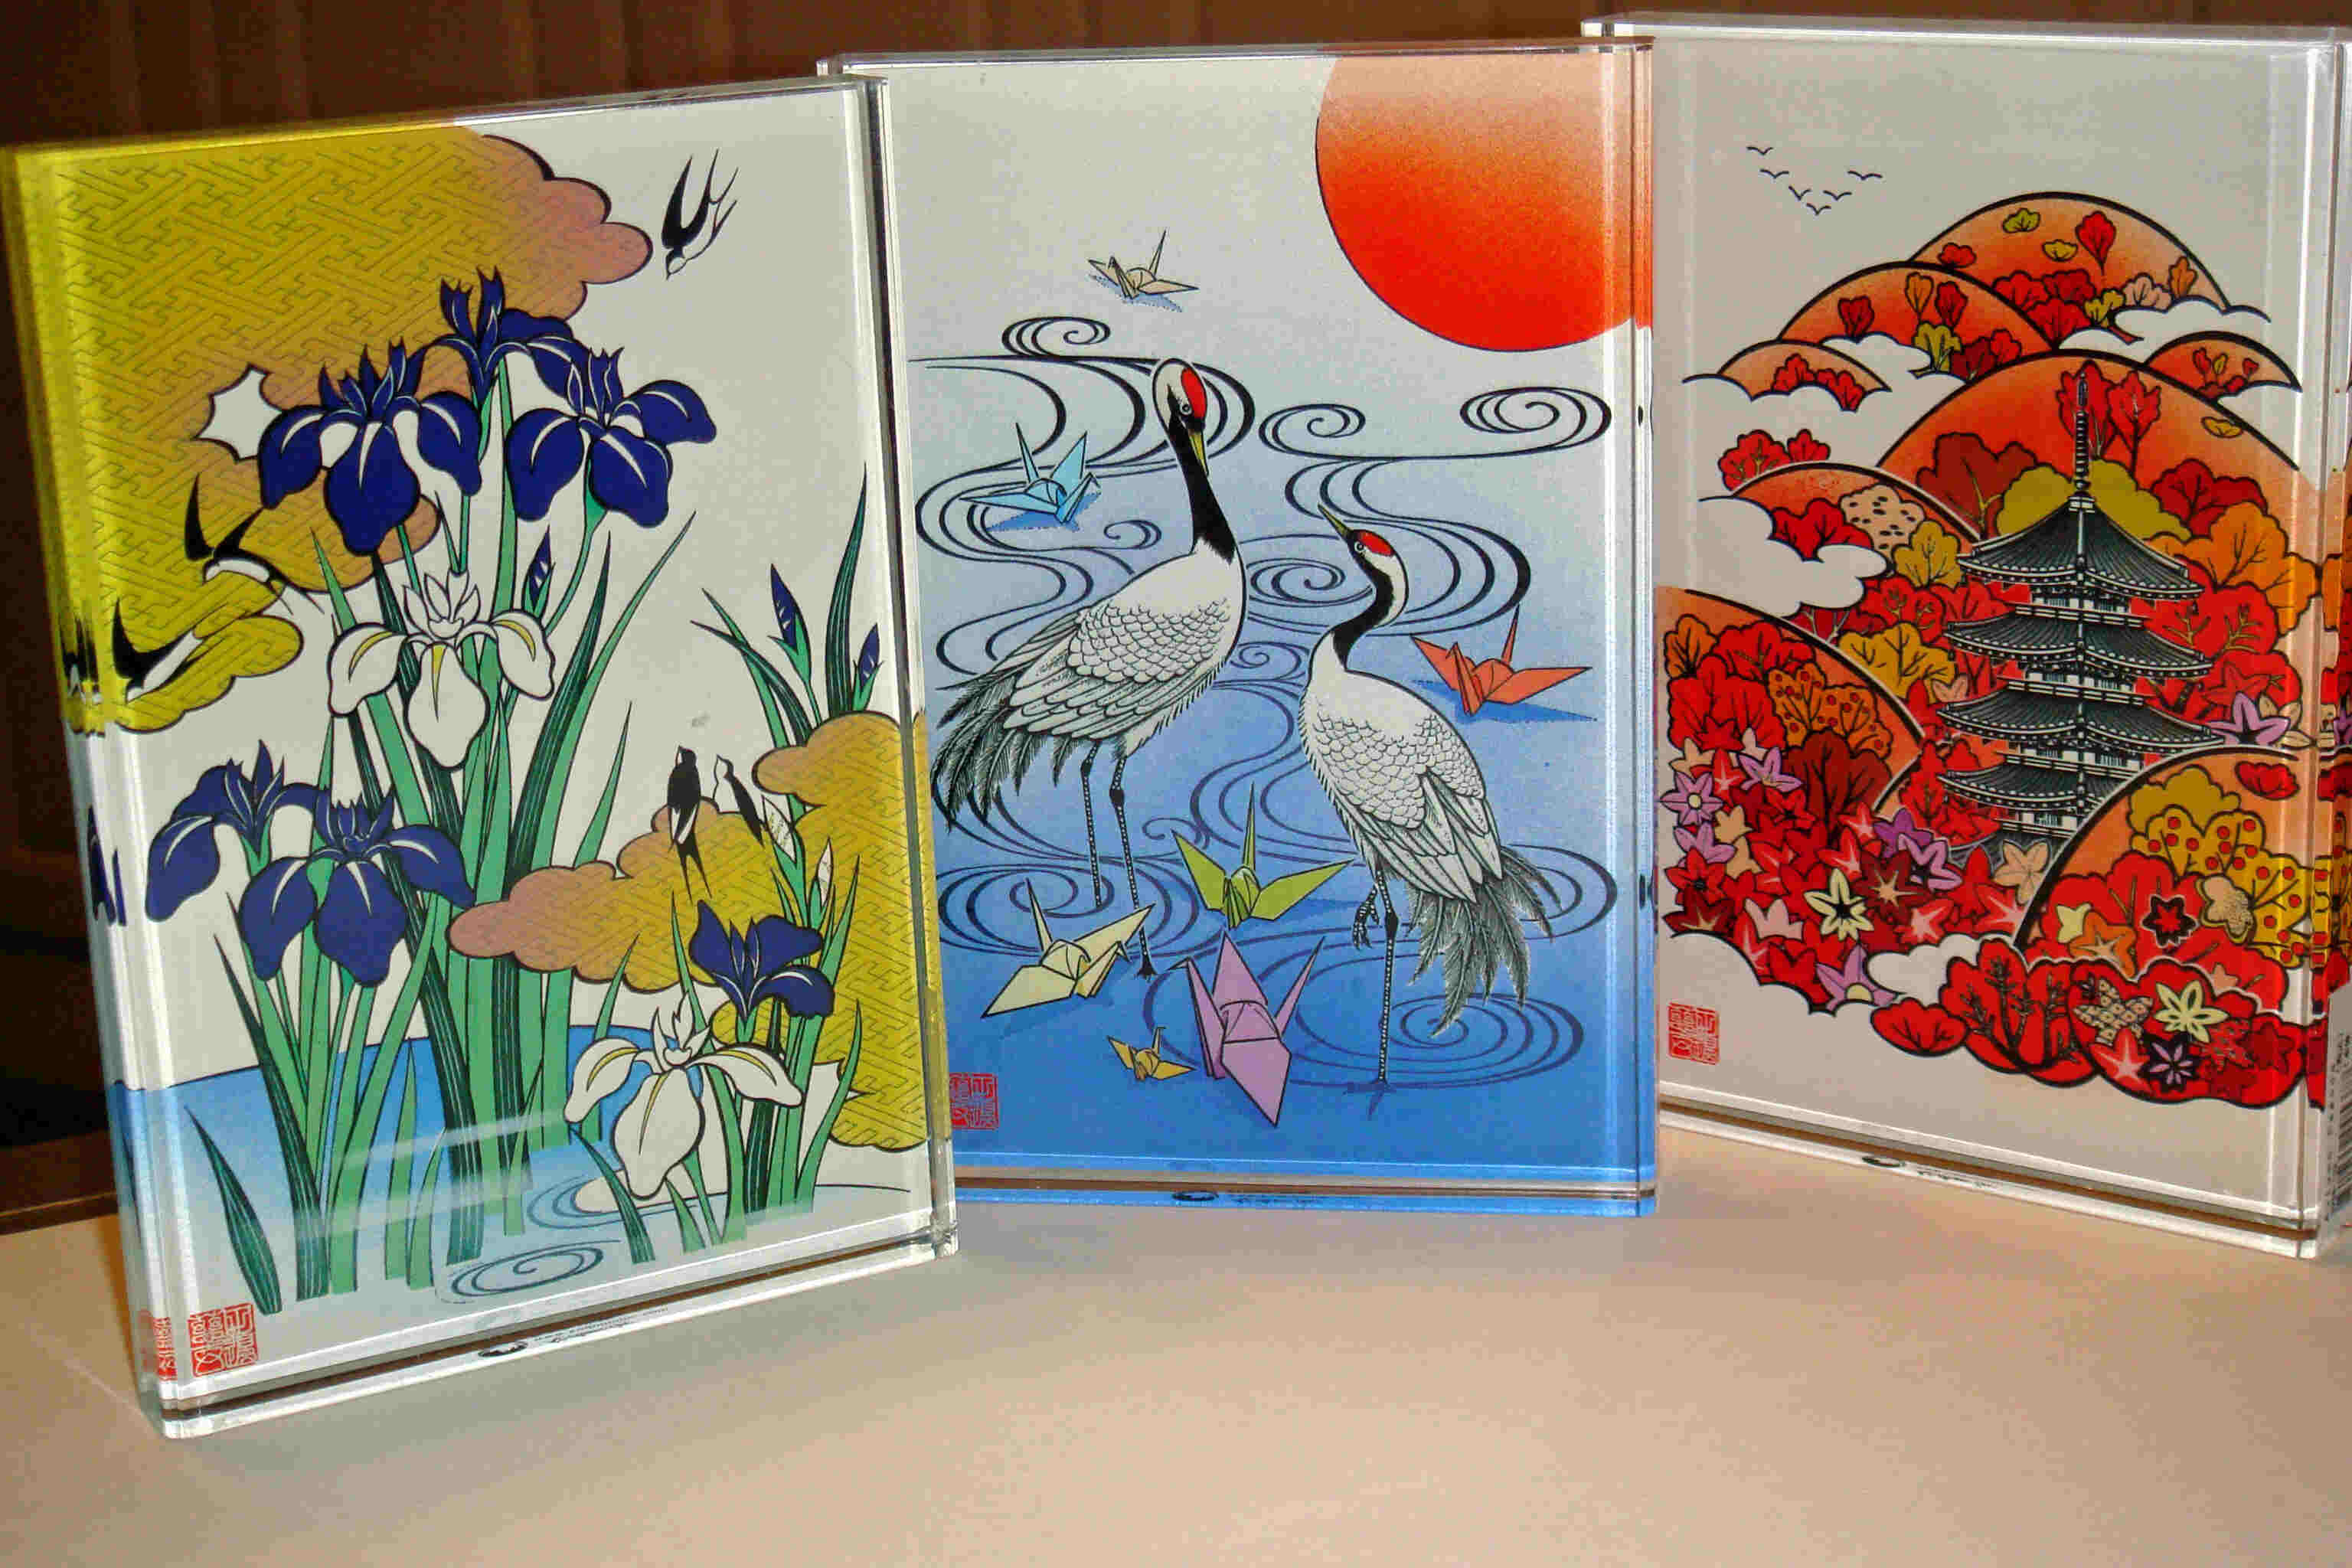 Zigen Tanabe images in beautiful color on acrylic mounts. Shown are Blooming Iris, Folded Cranes, Autumn Pagoda